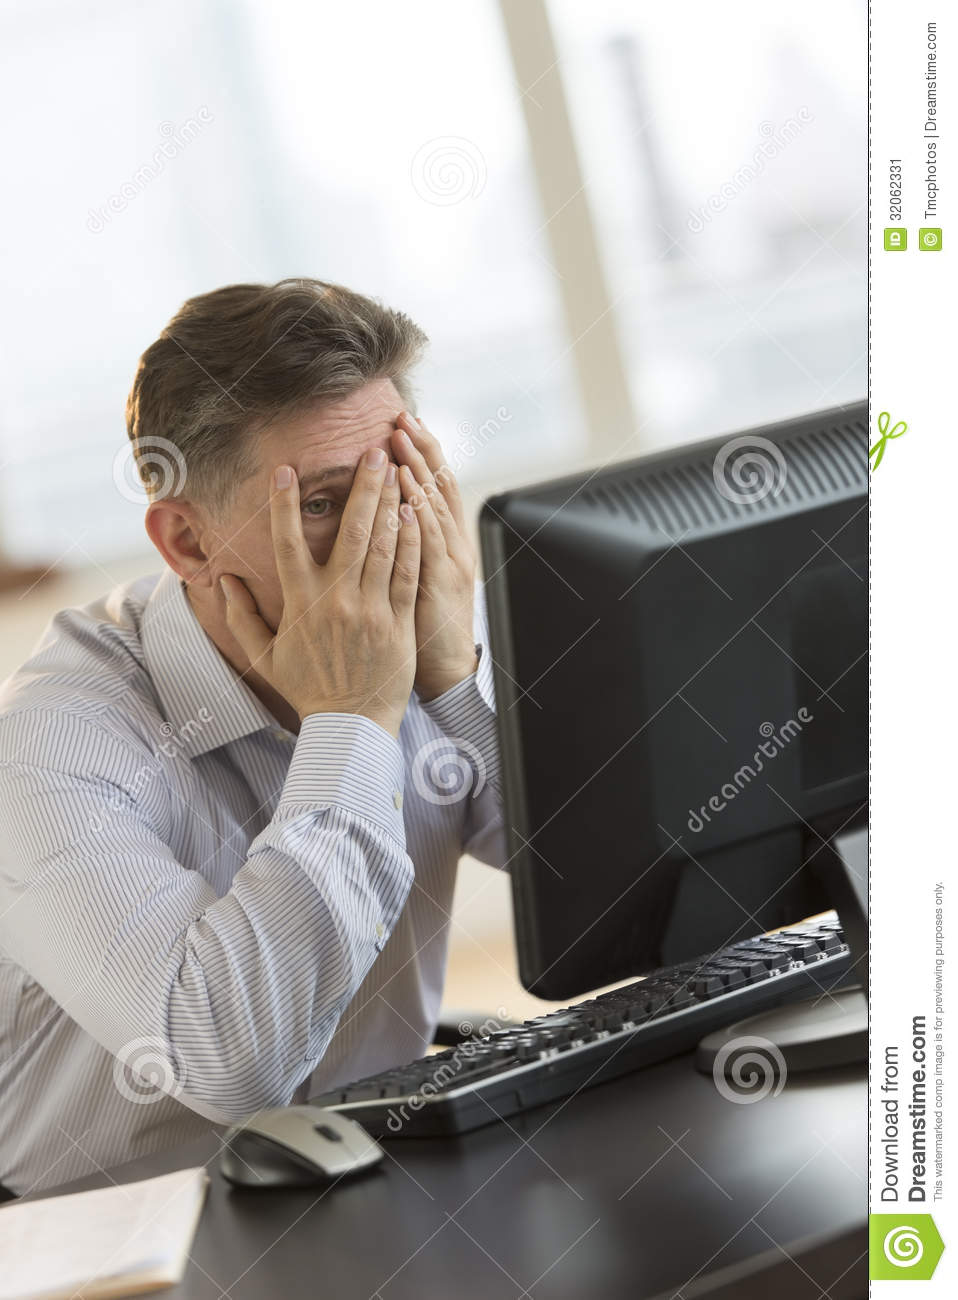 Frustrated Businessman With Hands On Face Looking At